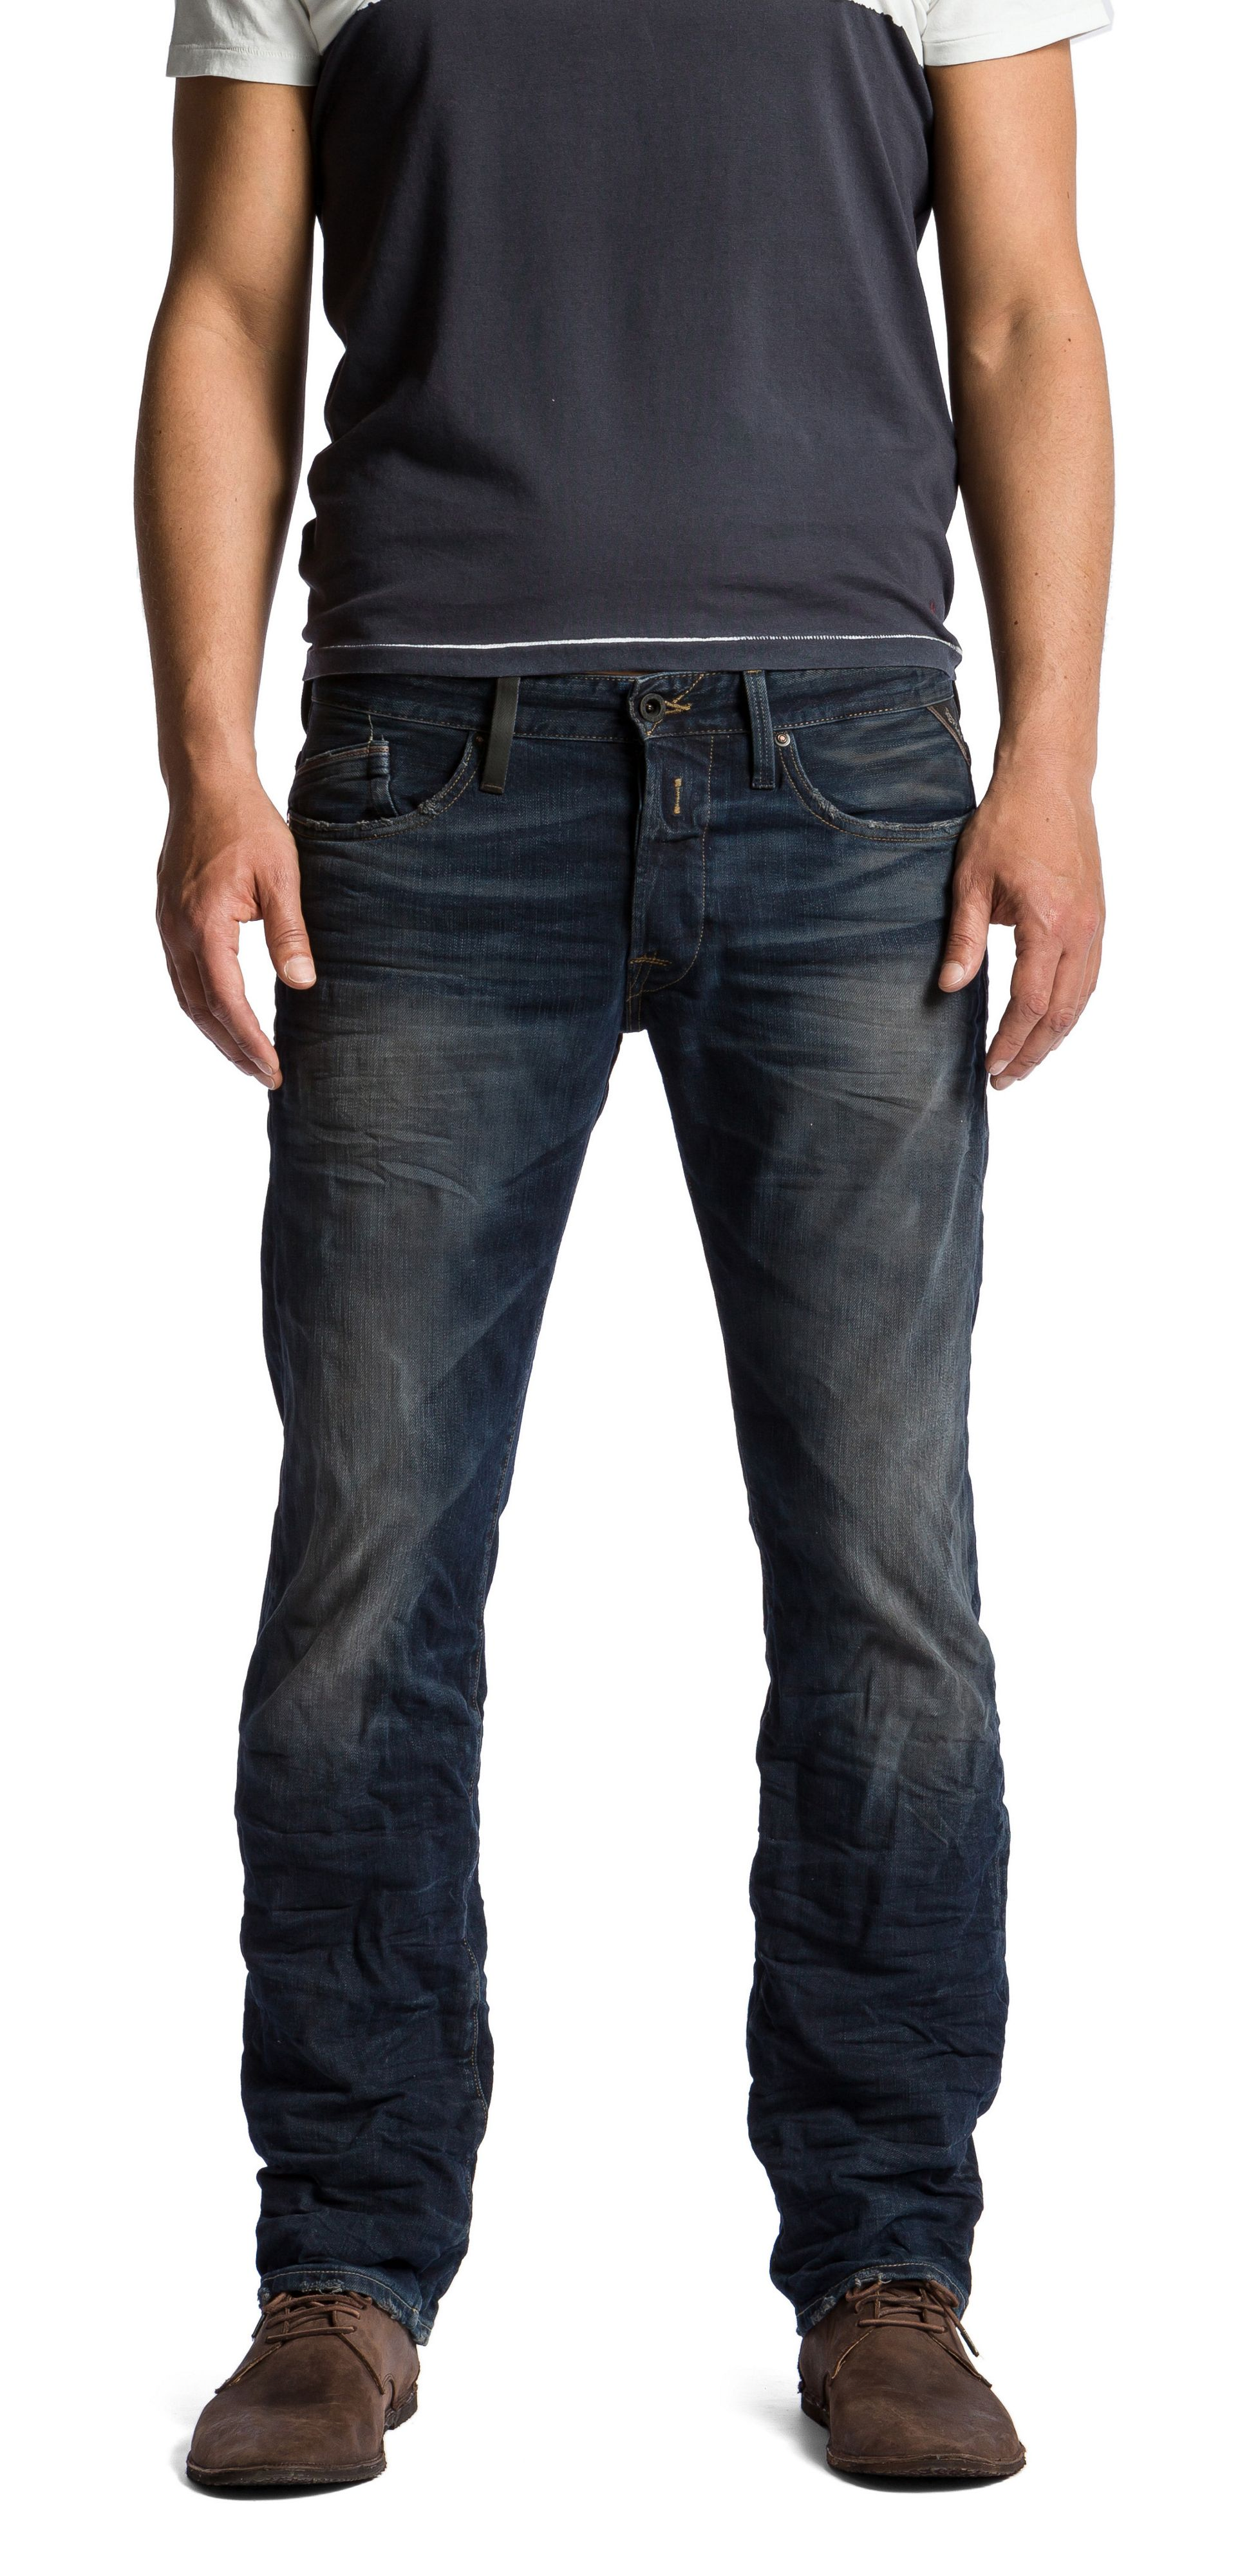 Laserblast Life Waitom regular slim fit jeans